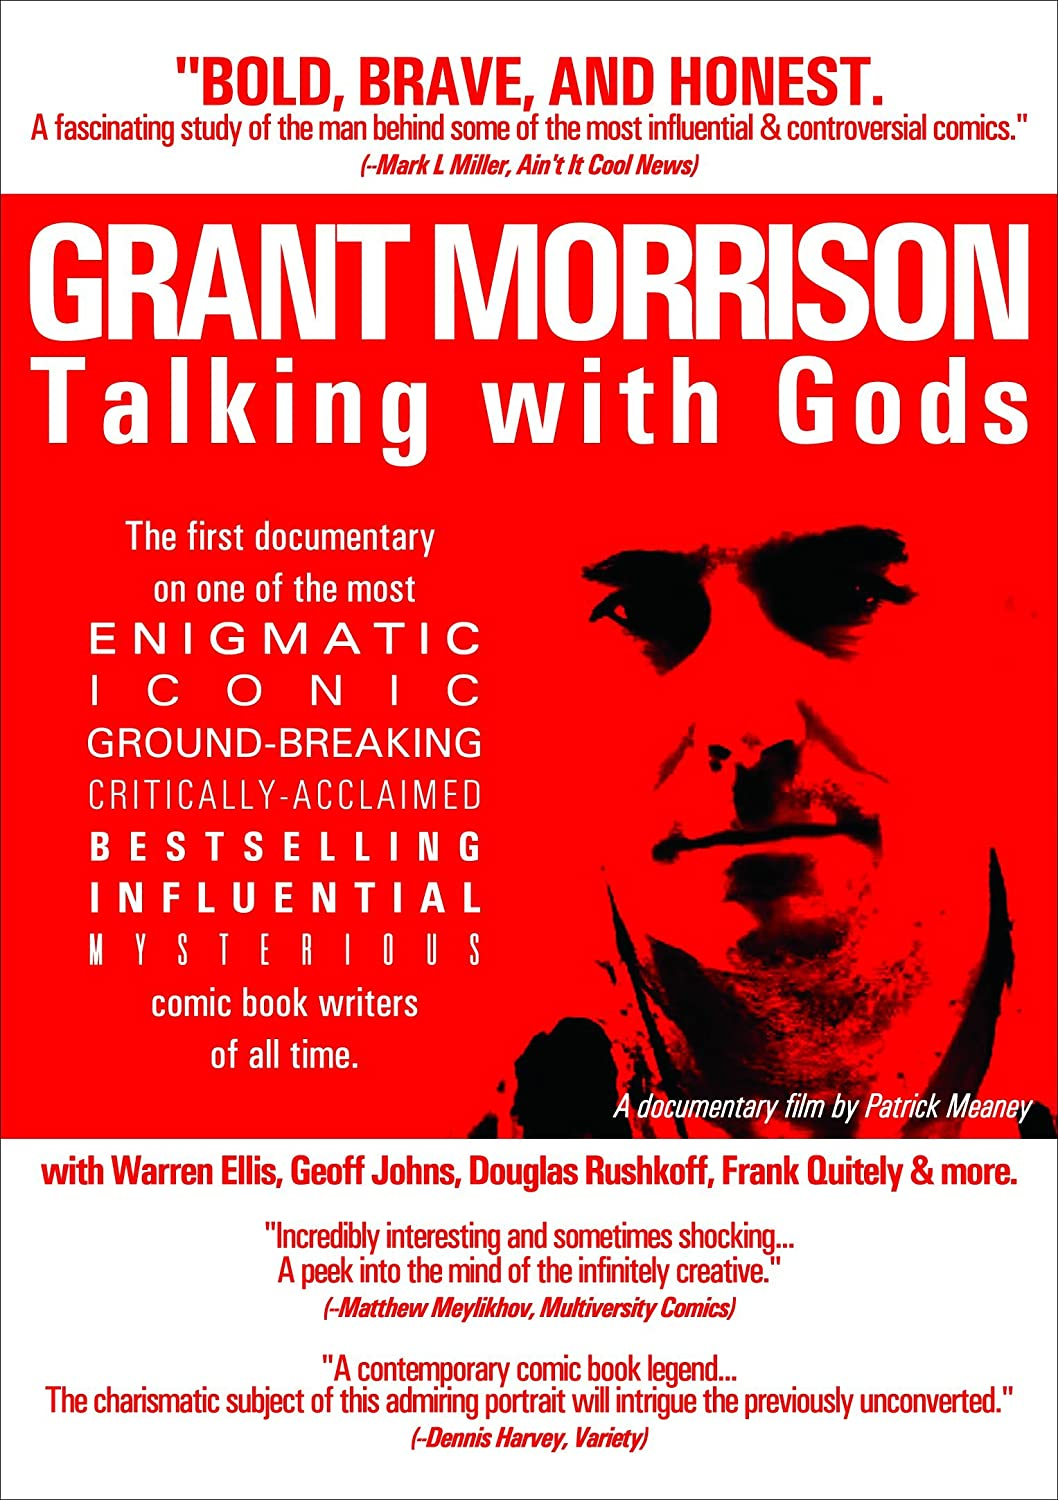 GRANT MORRISON - TALKING WITH GODS